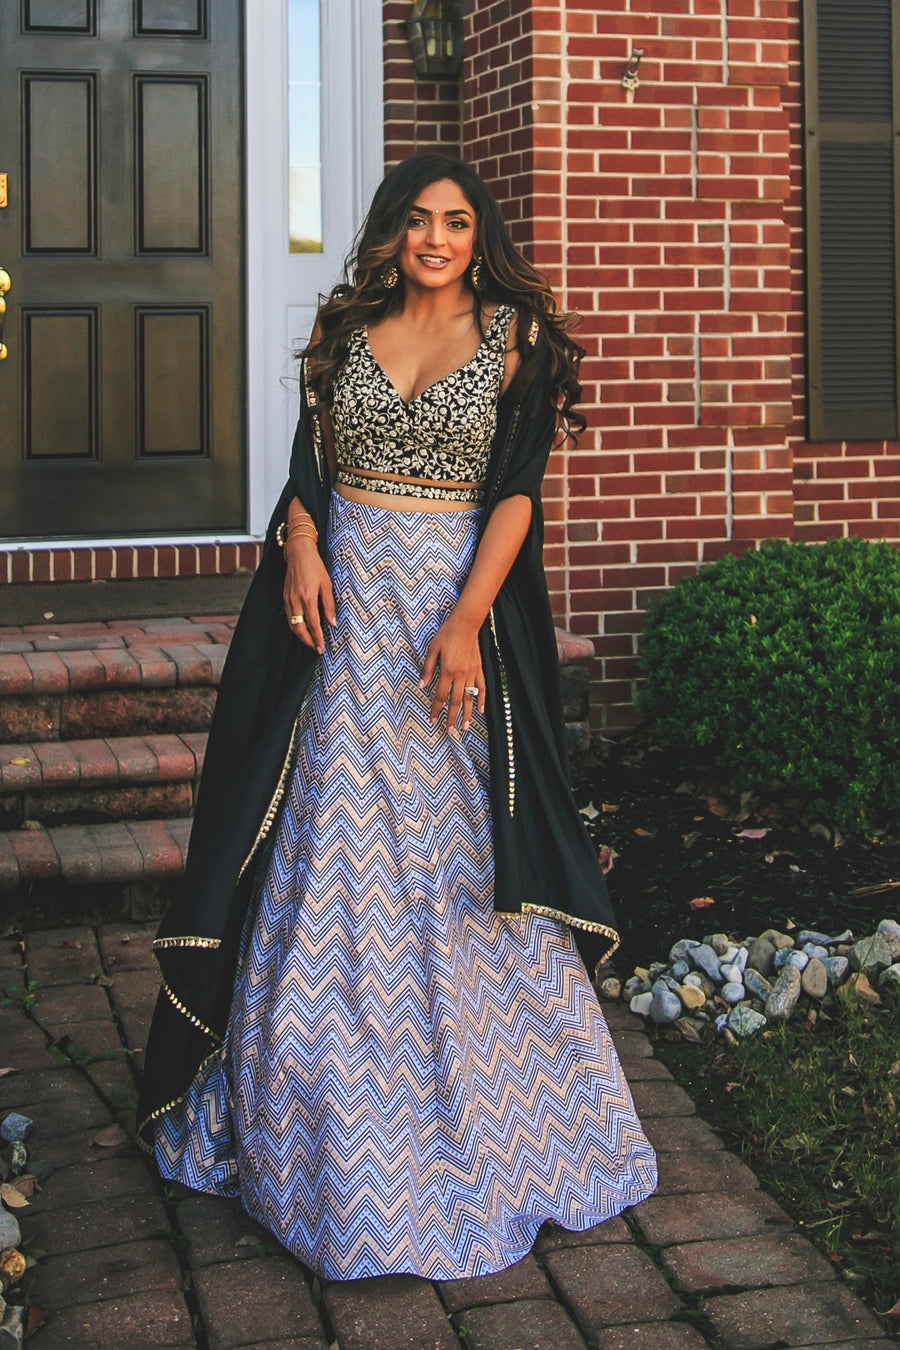 Chevron Lehenga with Cape